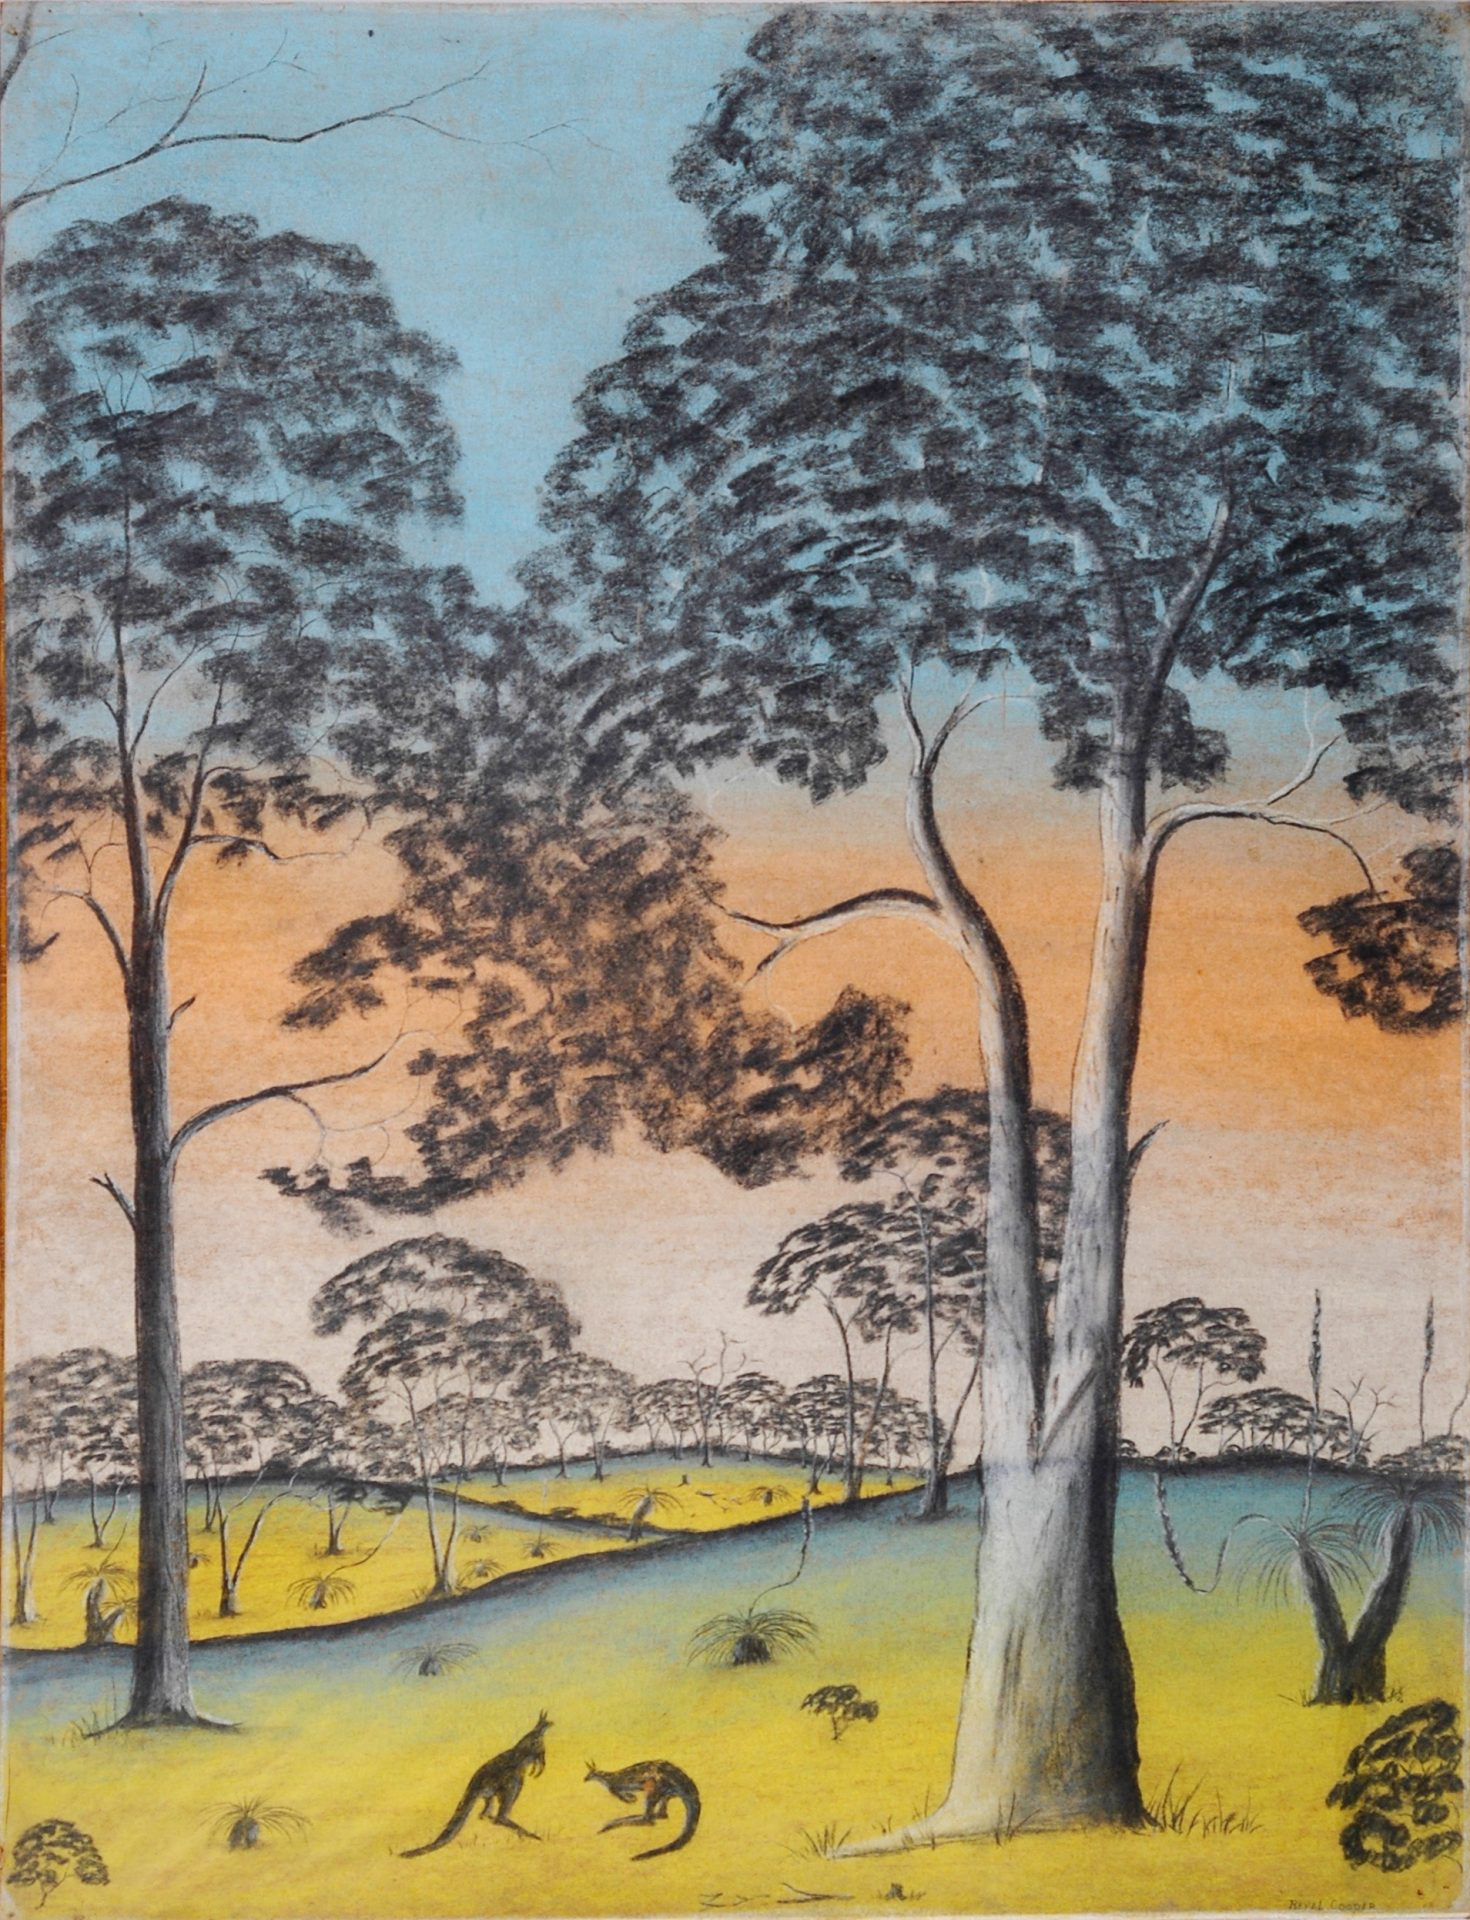 Contentment by Revel Cooper, pastel on paper, 76.3 x 58mm, c.1949. The Herbert Mayer Collection of Carrolup Artwork, John Curtin Gallery, Curtin University.